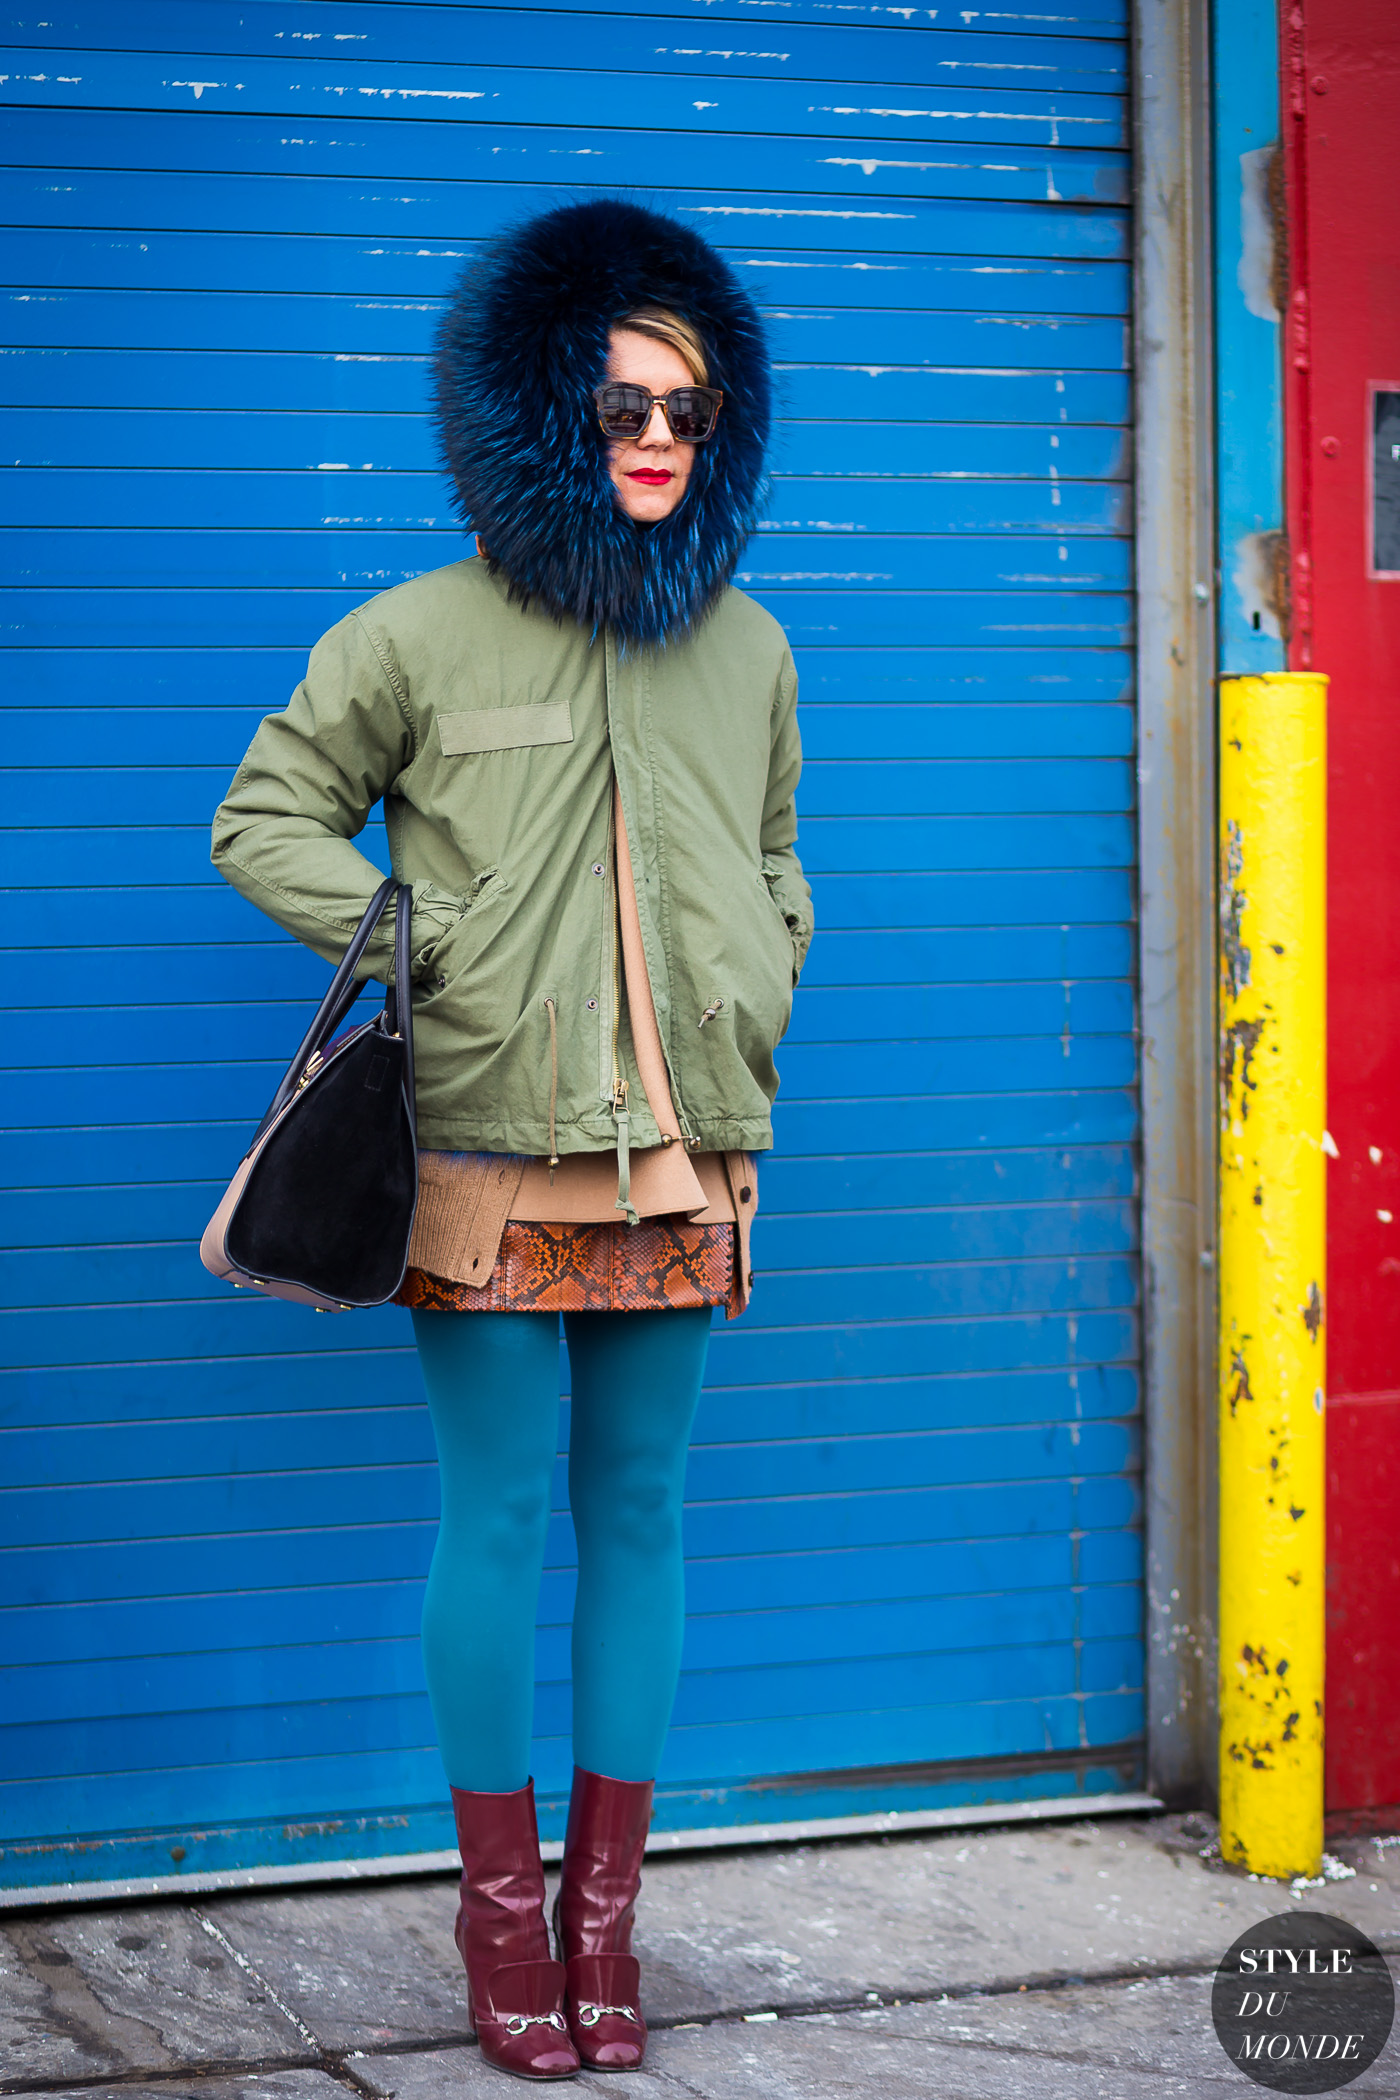 Natalie Joos Street Style Street Fashion Streetsnaps by STYLEDUMONDE Street Style Fashion Photography